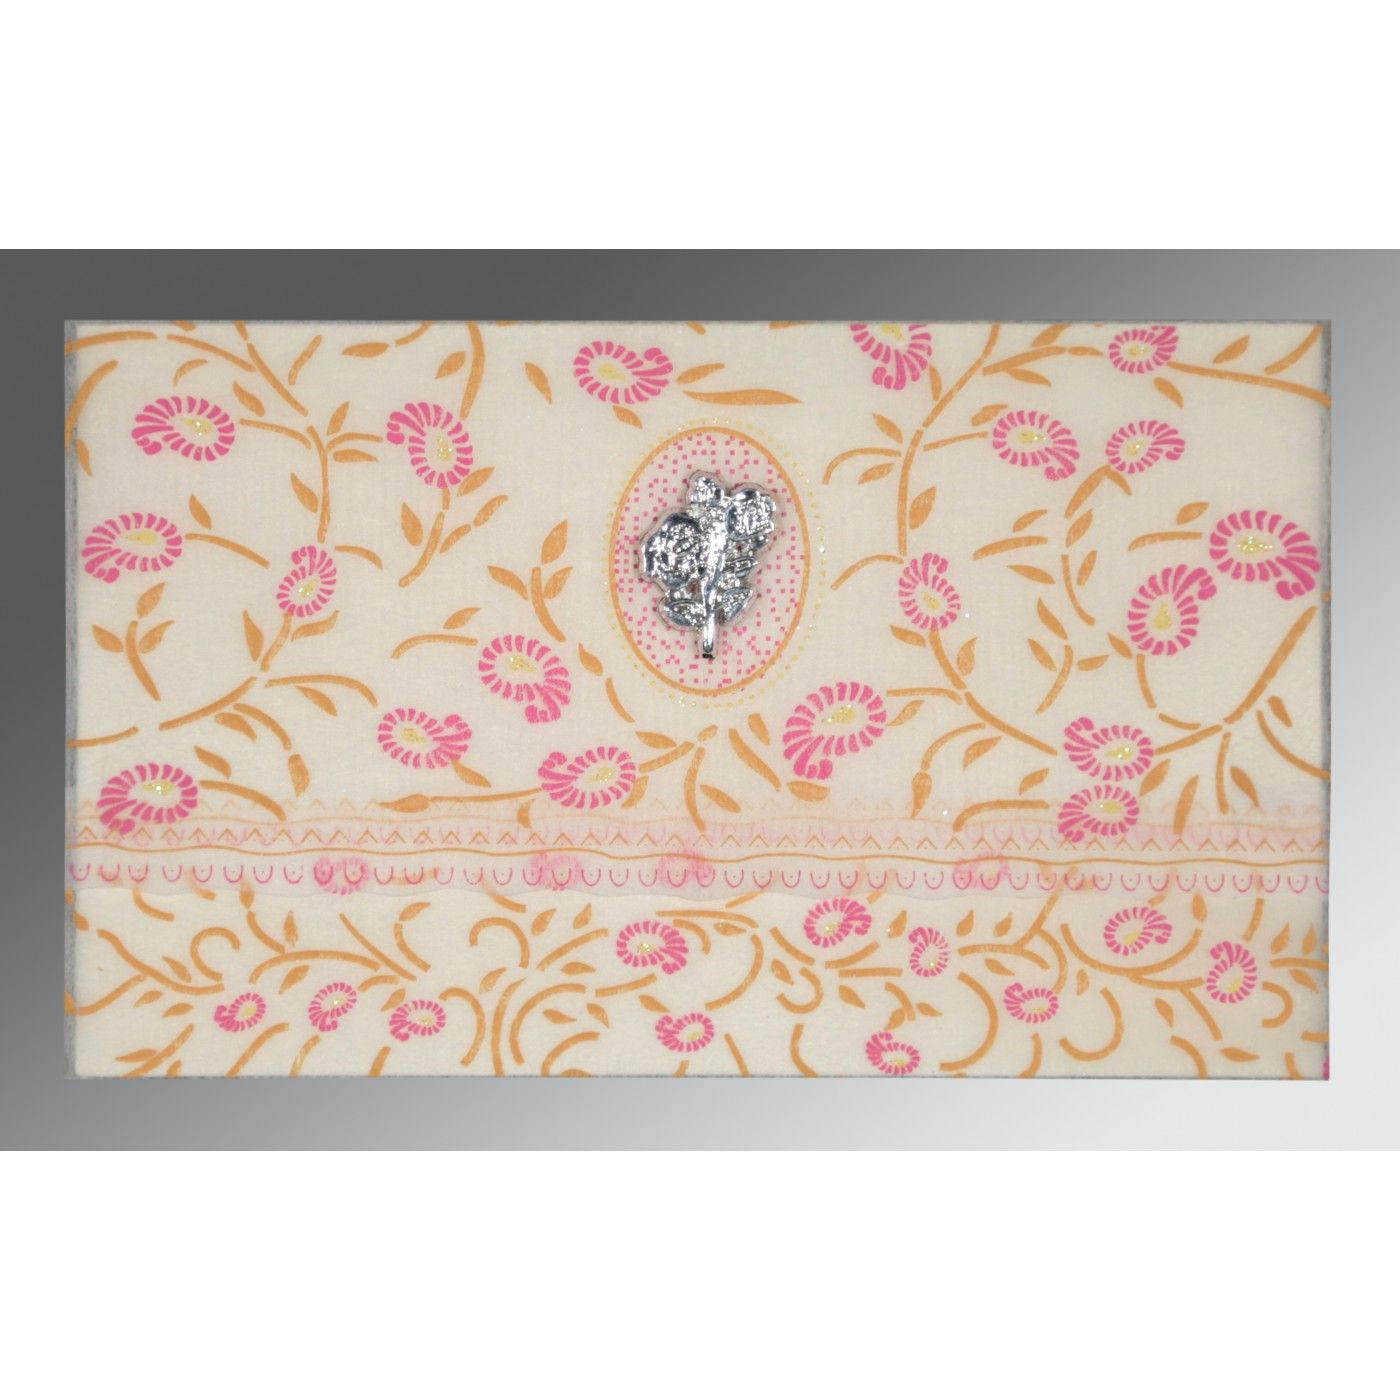 OFF-WHITE WOOLY FLORAL THEMED - GLITTER WEDDING CARD : CI-8206F - IndianWeddingCards